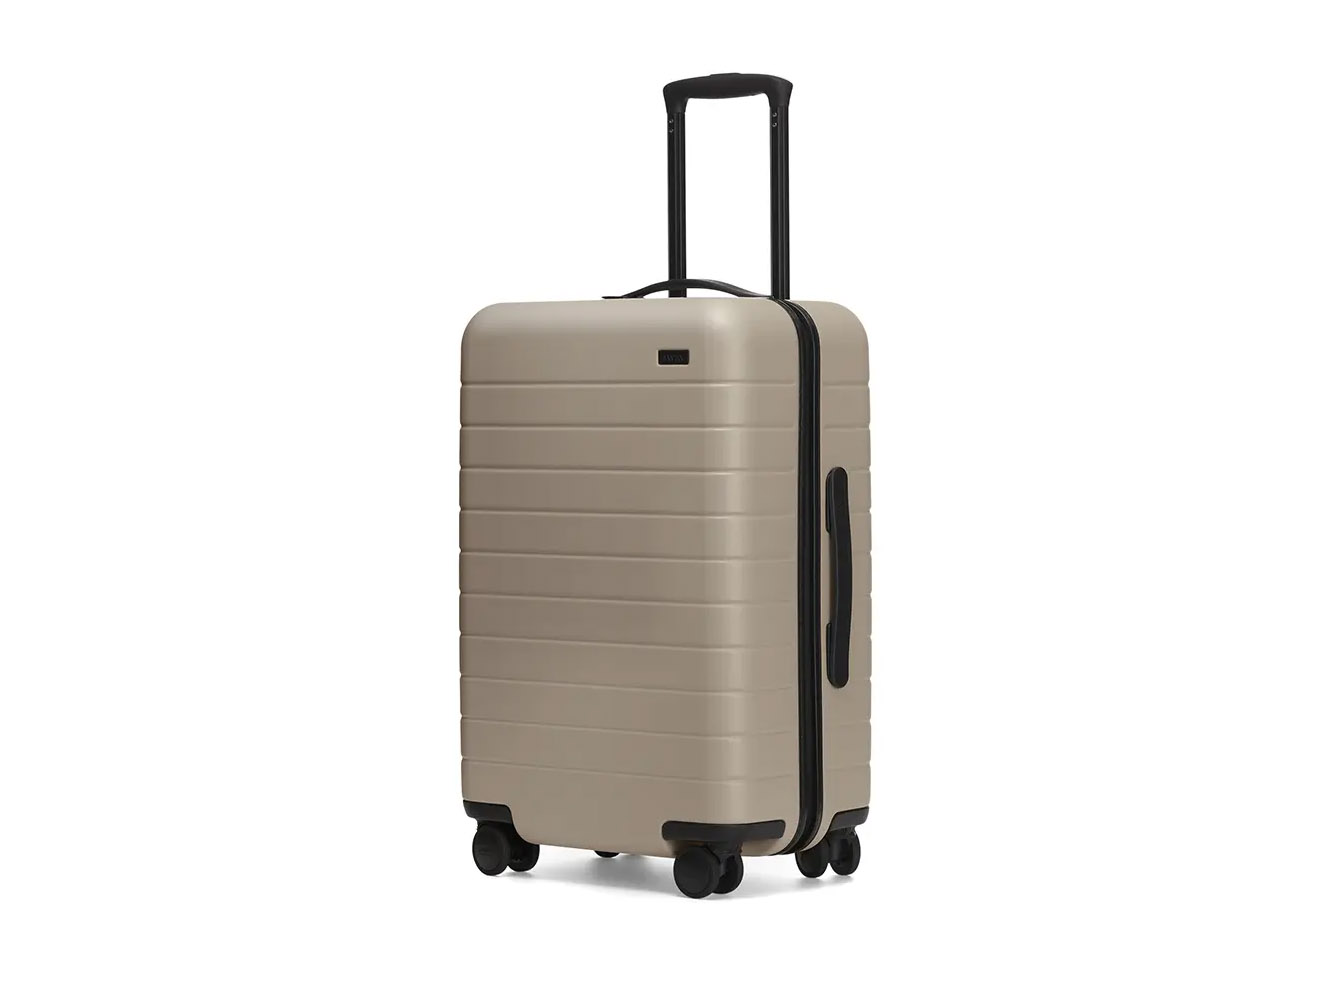 Best Covid-19 Travel Accessories - Away Bigger Carry-On